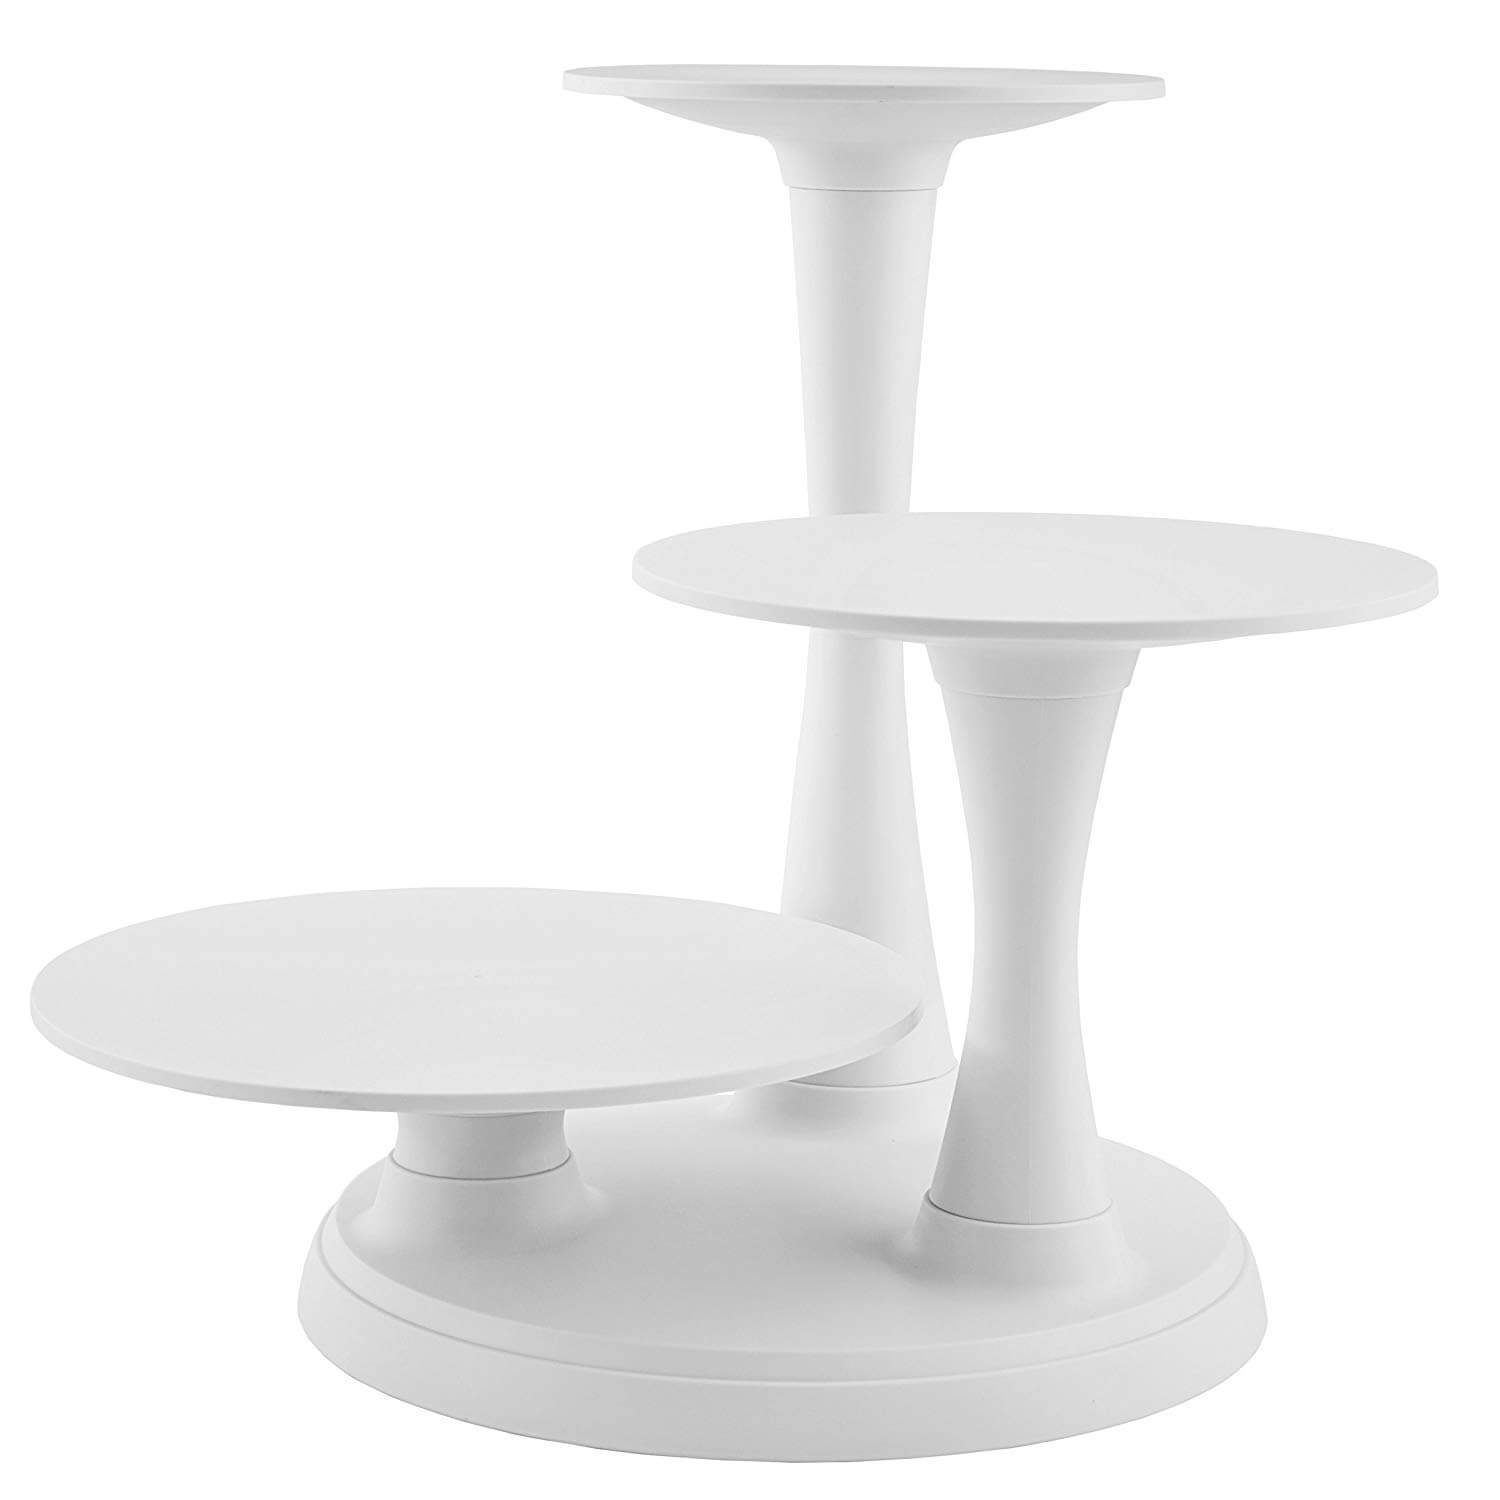 Wilton cake stands